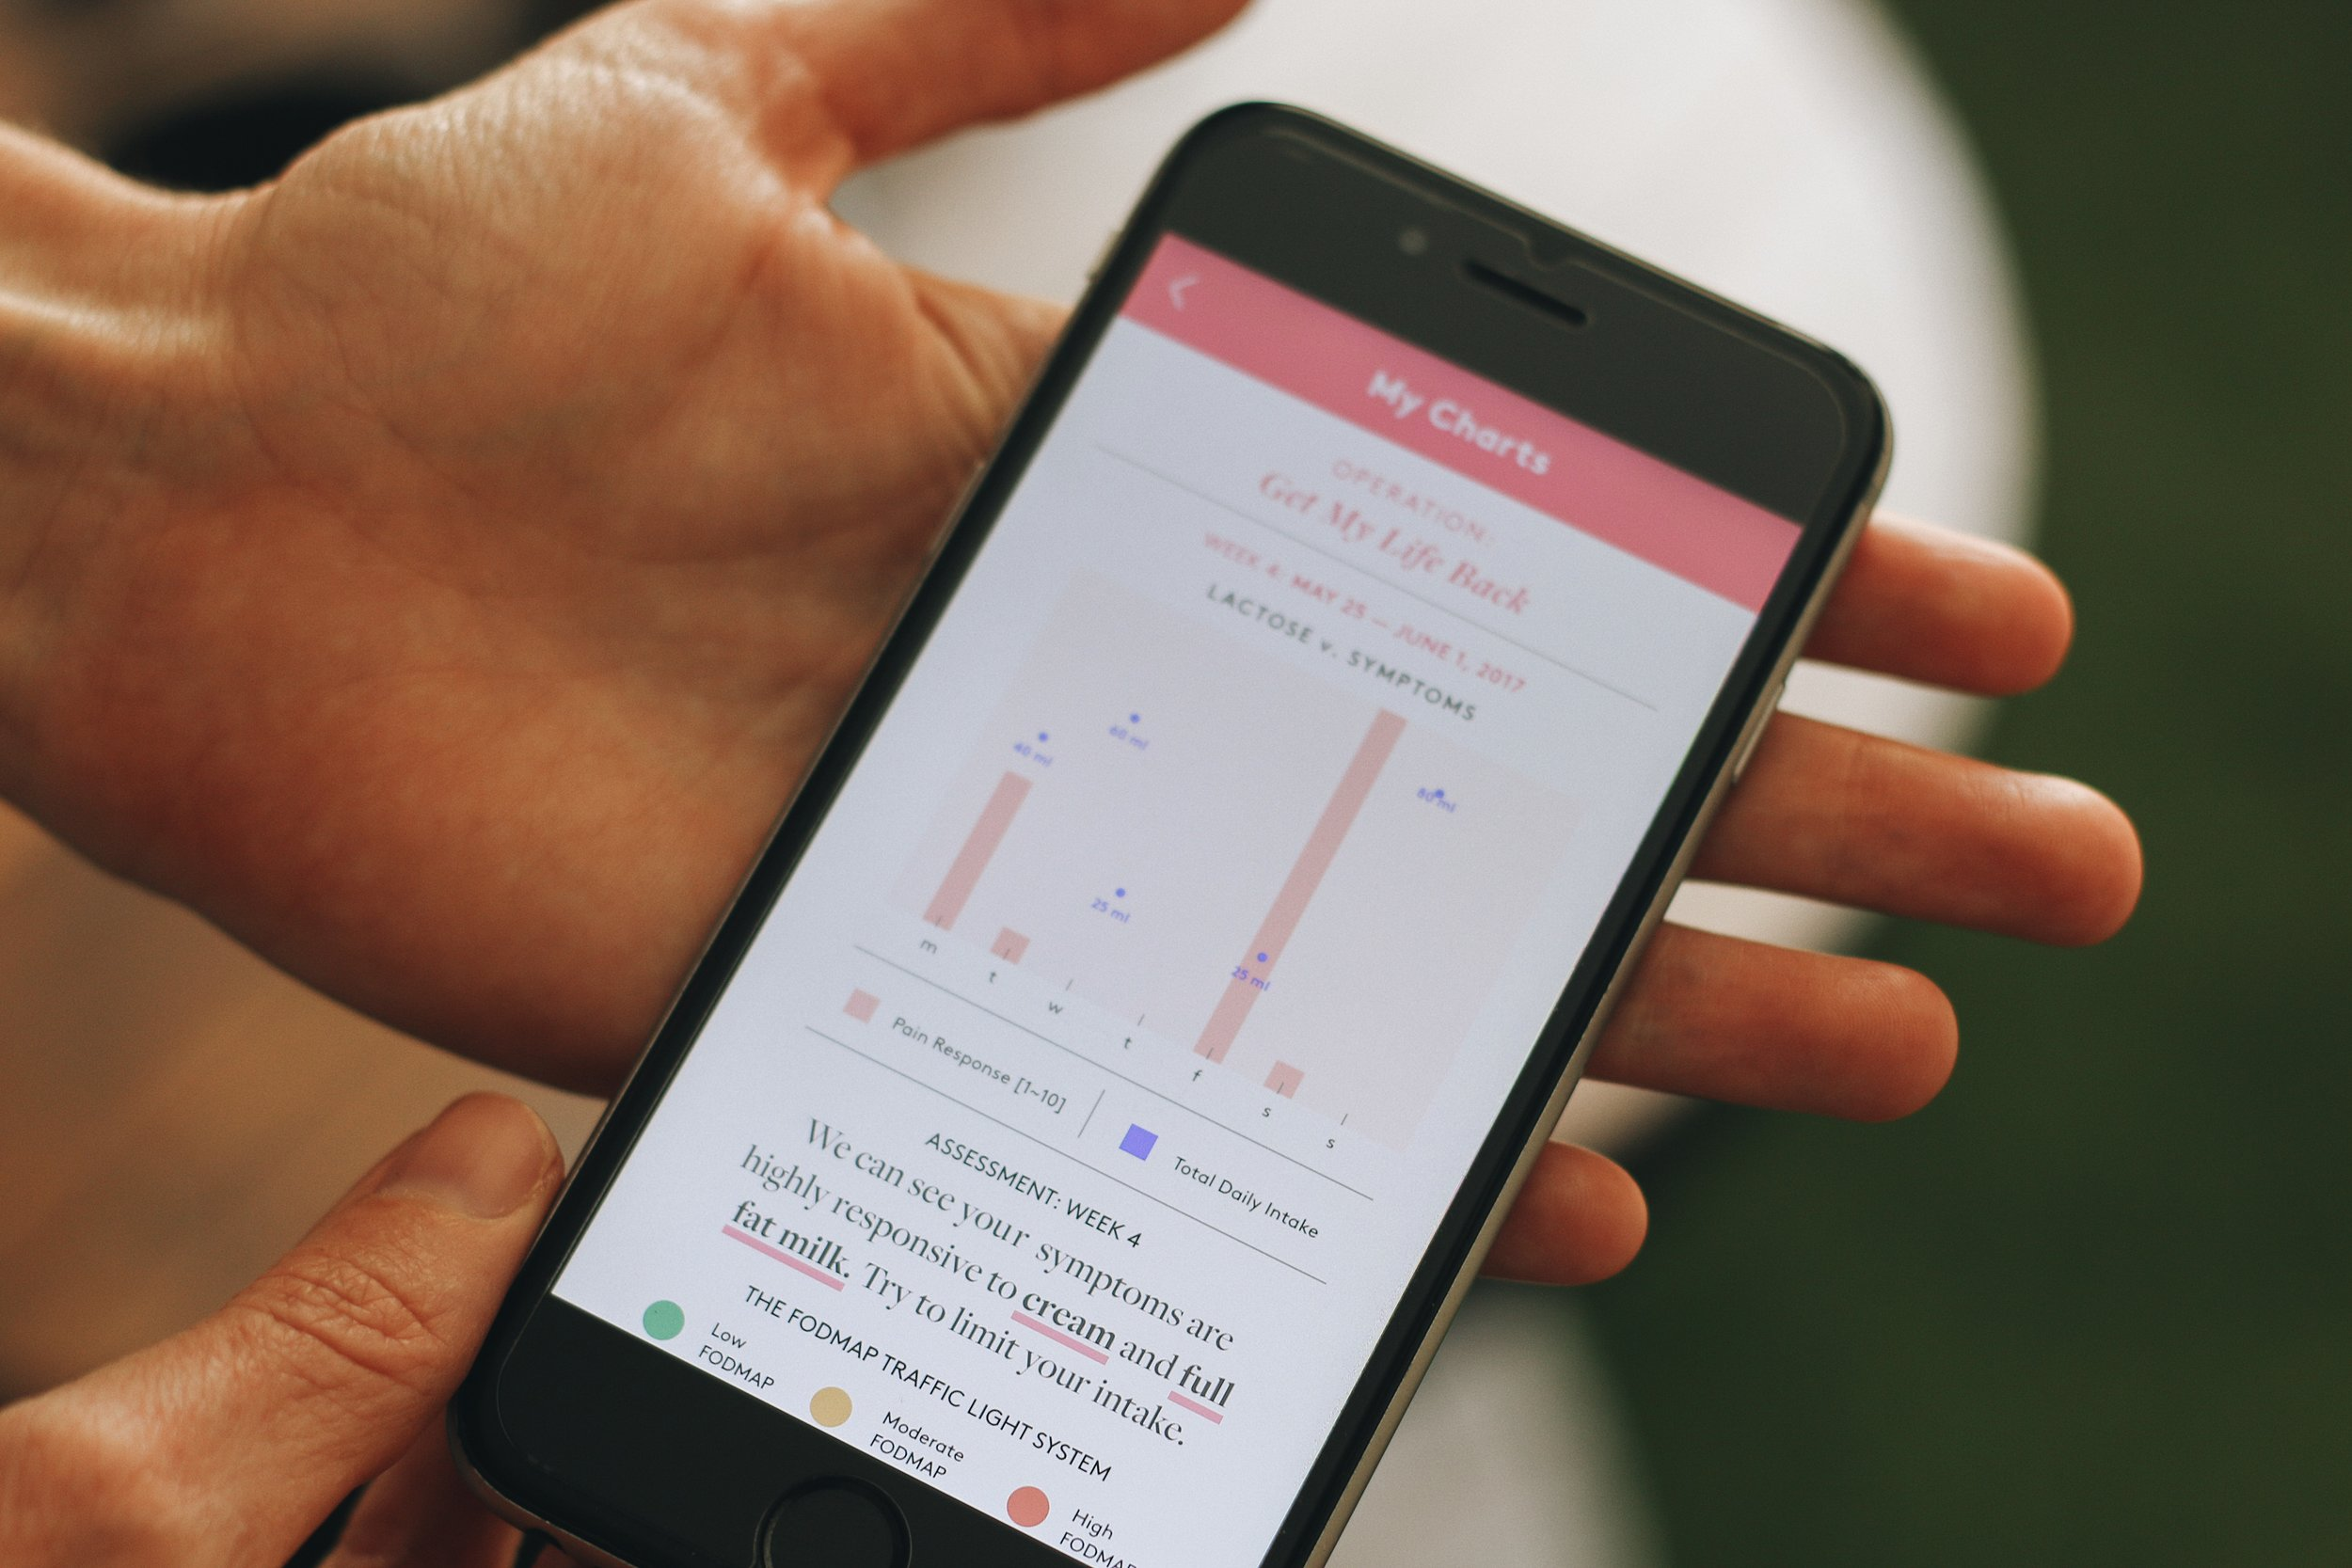 """👩💻 Have you seen the application I'm creating? I became fed up with the management of my Endometriosis and said """" F**k it!  There has to be a better way to manage this rather than taking a bunch of prescription pain killers"""".    Read a little about my process here and sign up to be a Beta Tester ☞"""